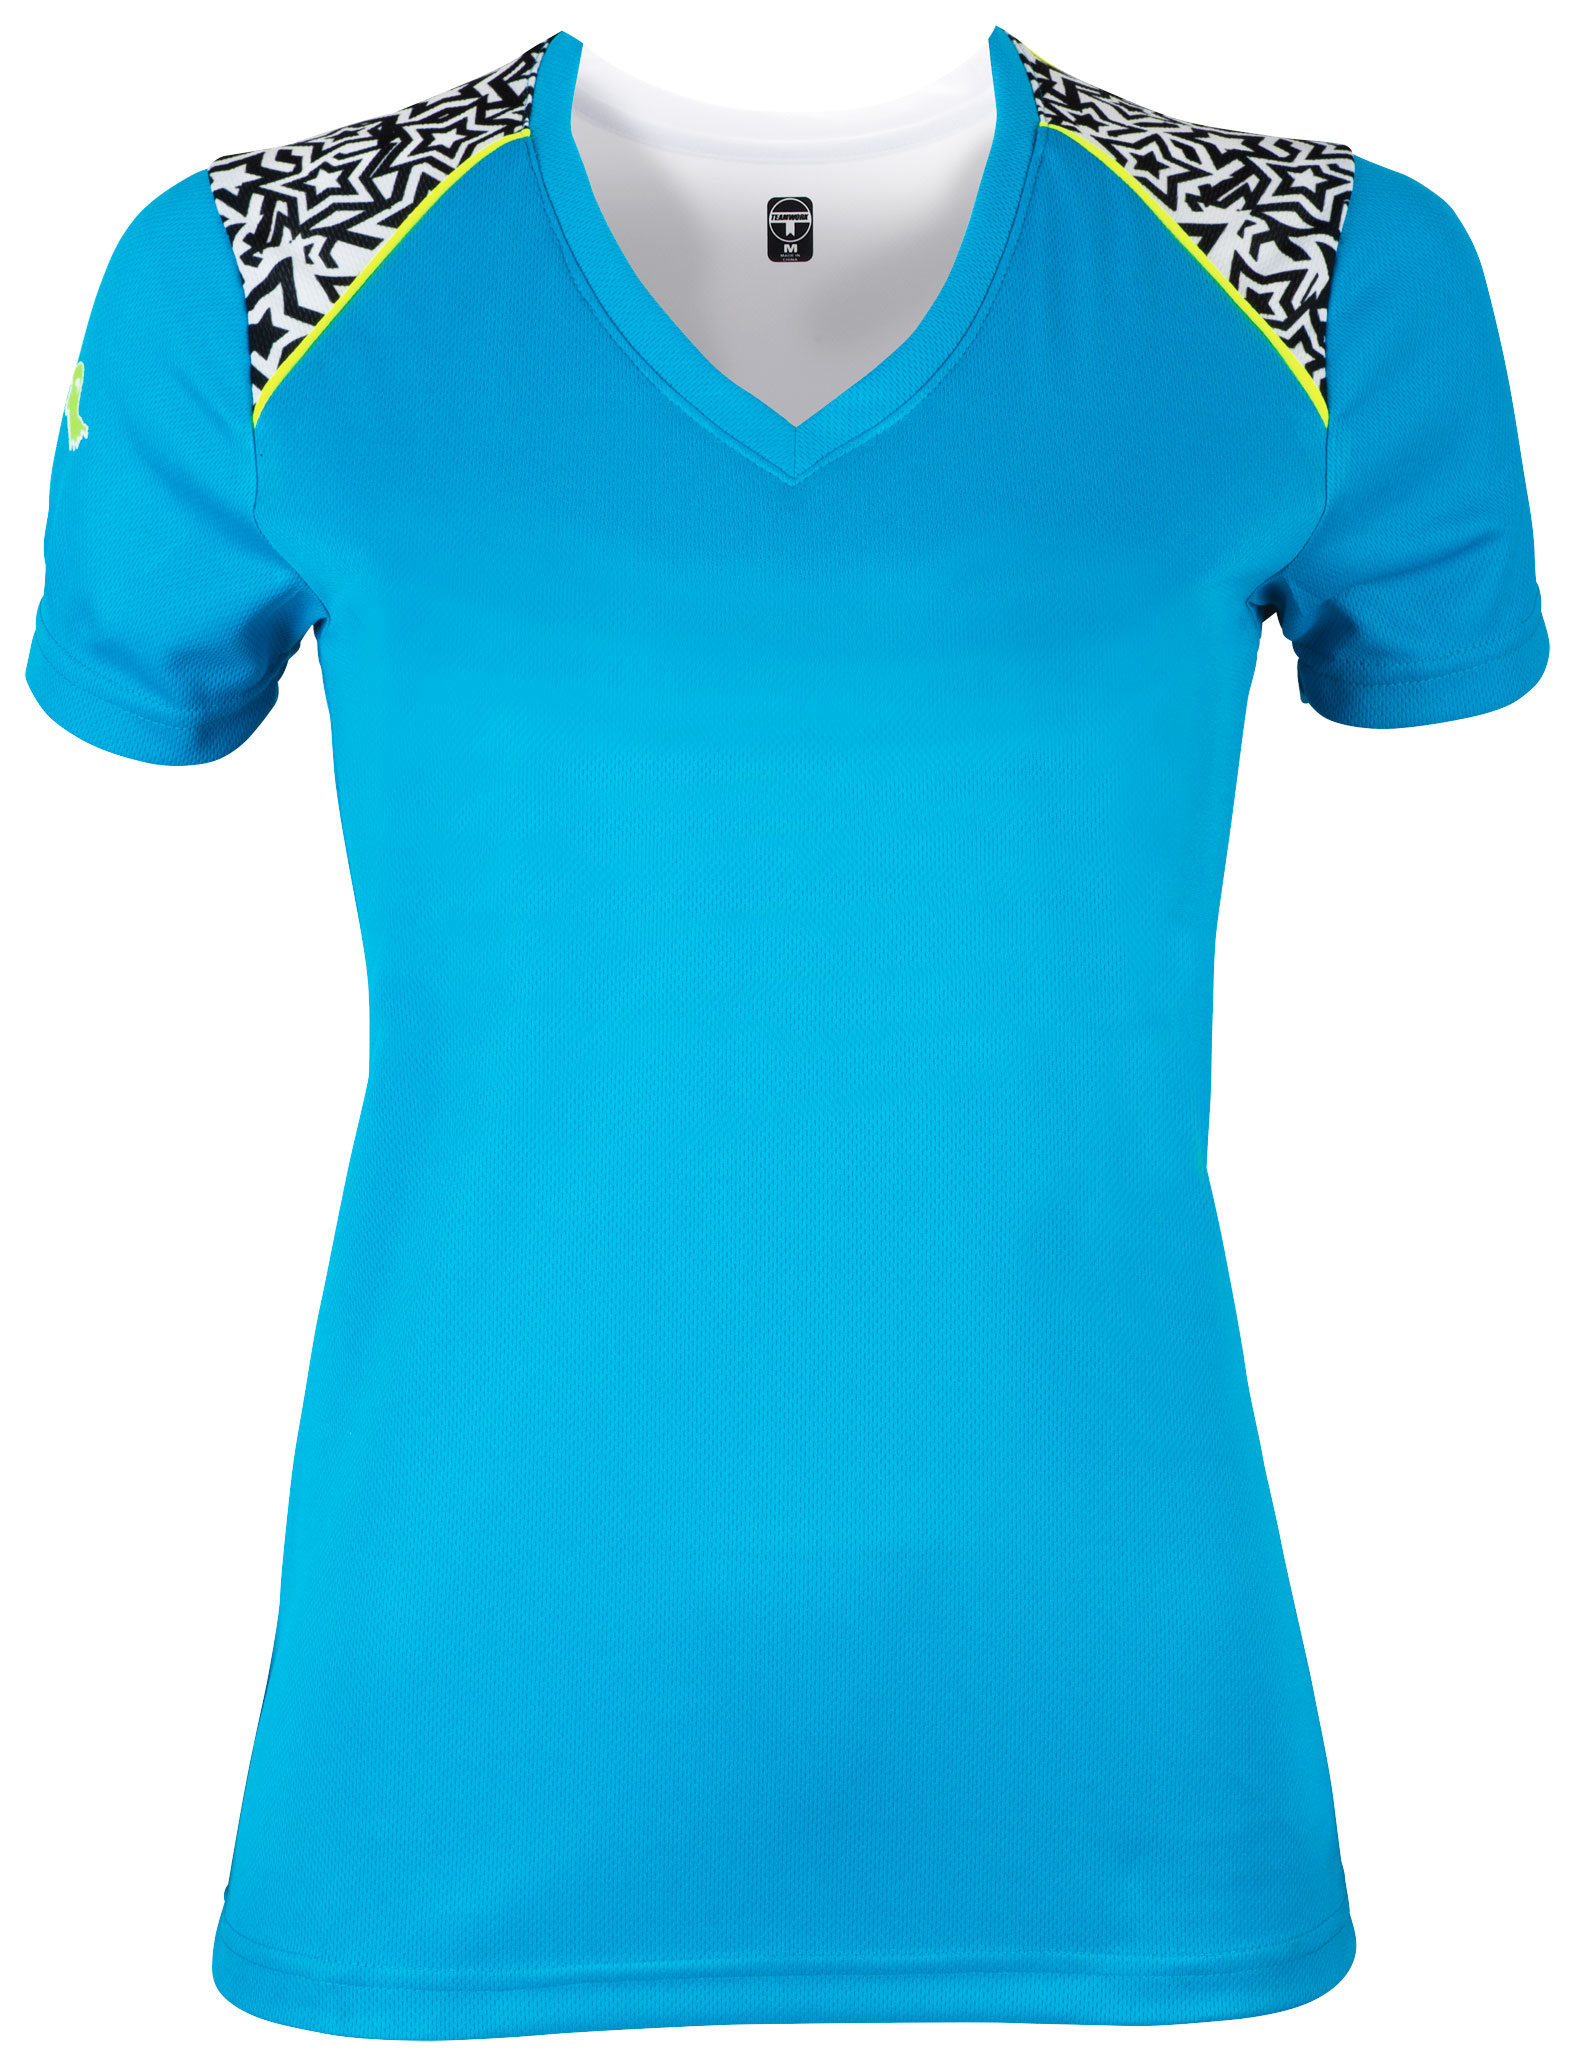 Teamwork Youth Girls Starlet Tech Tee - CLOSEOUT